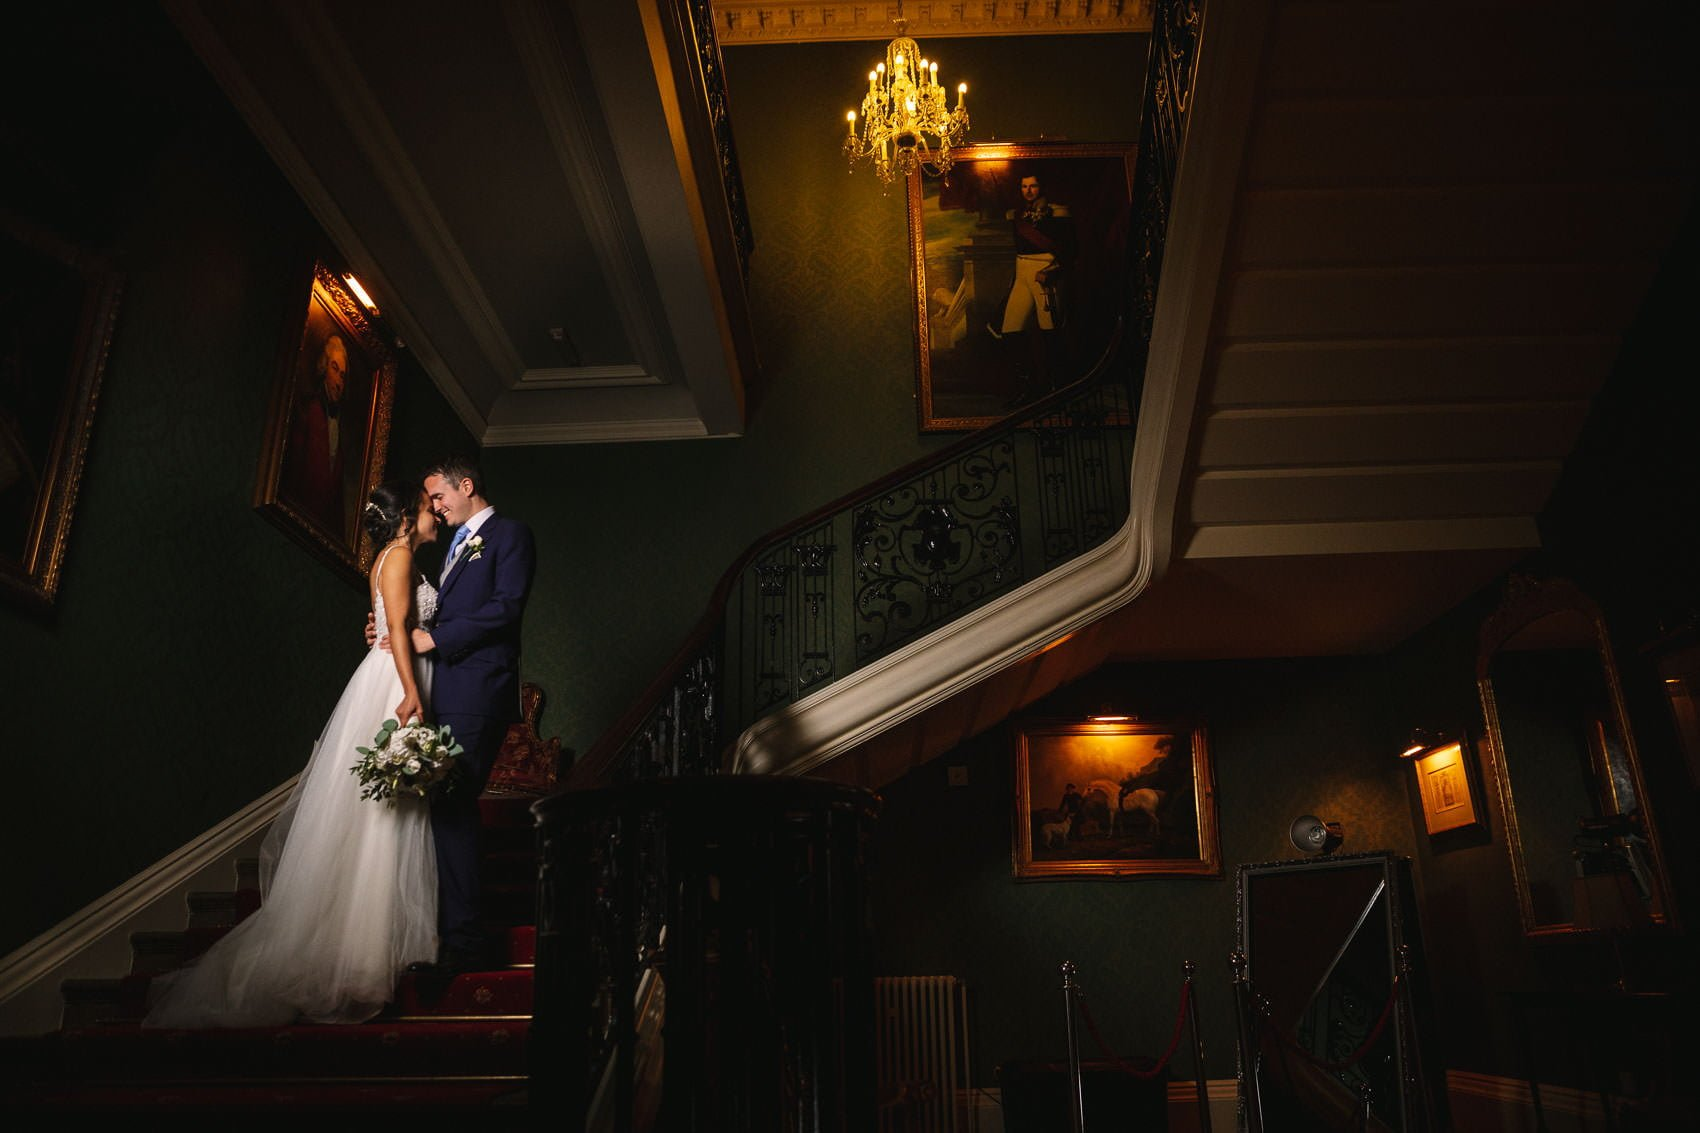 Addington Palace Wedding Photography 69